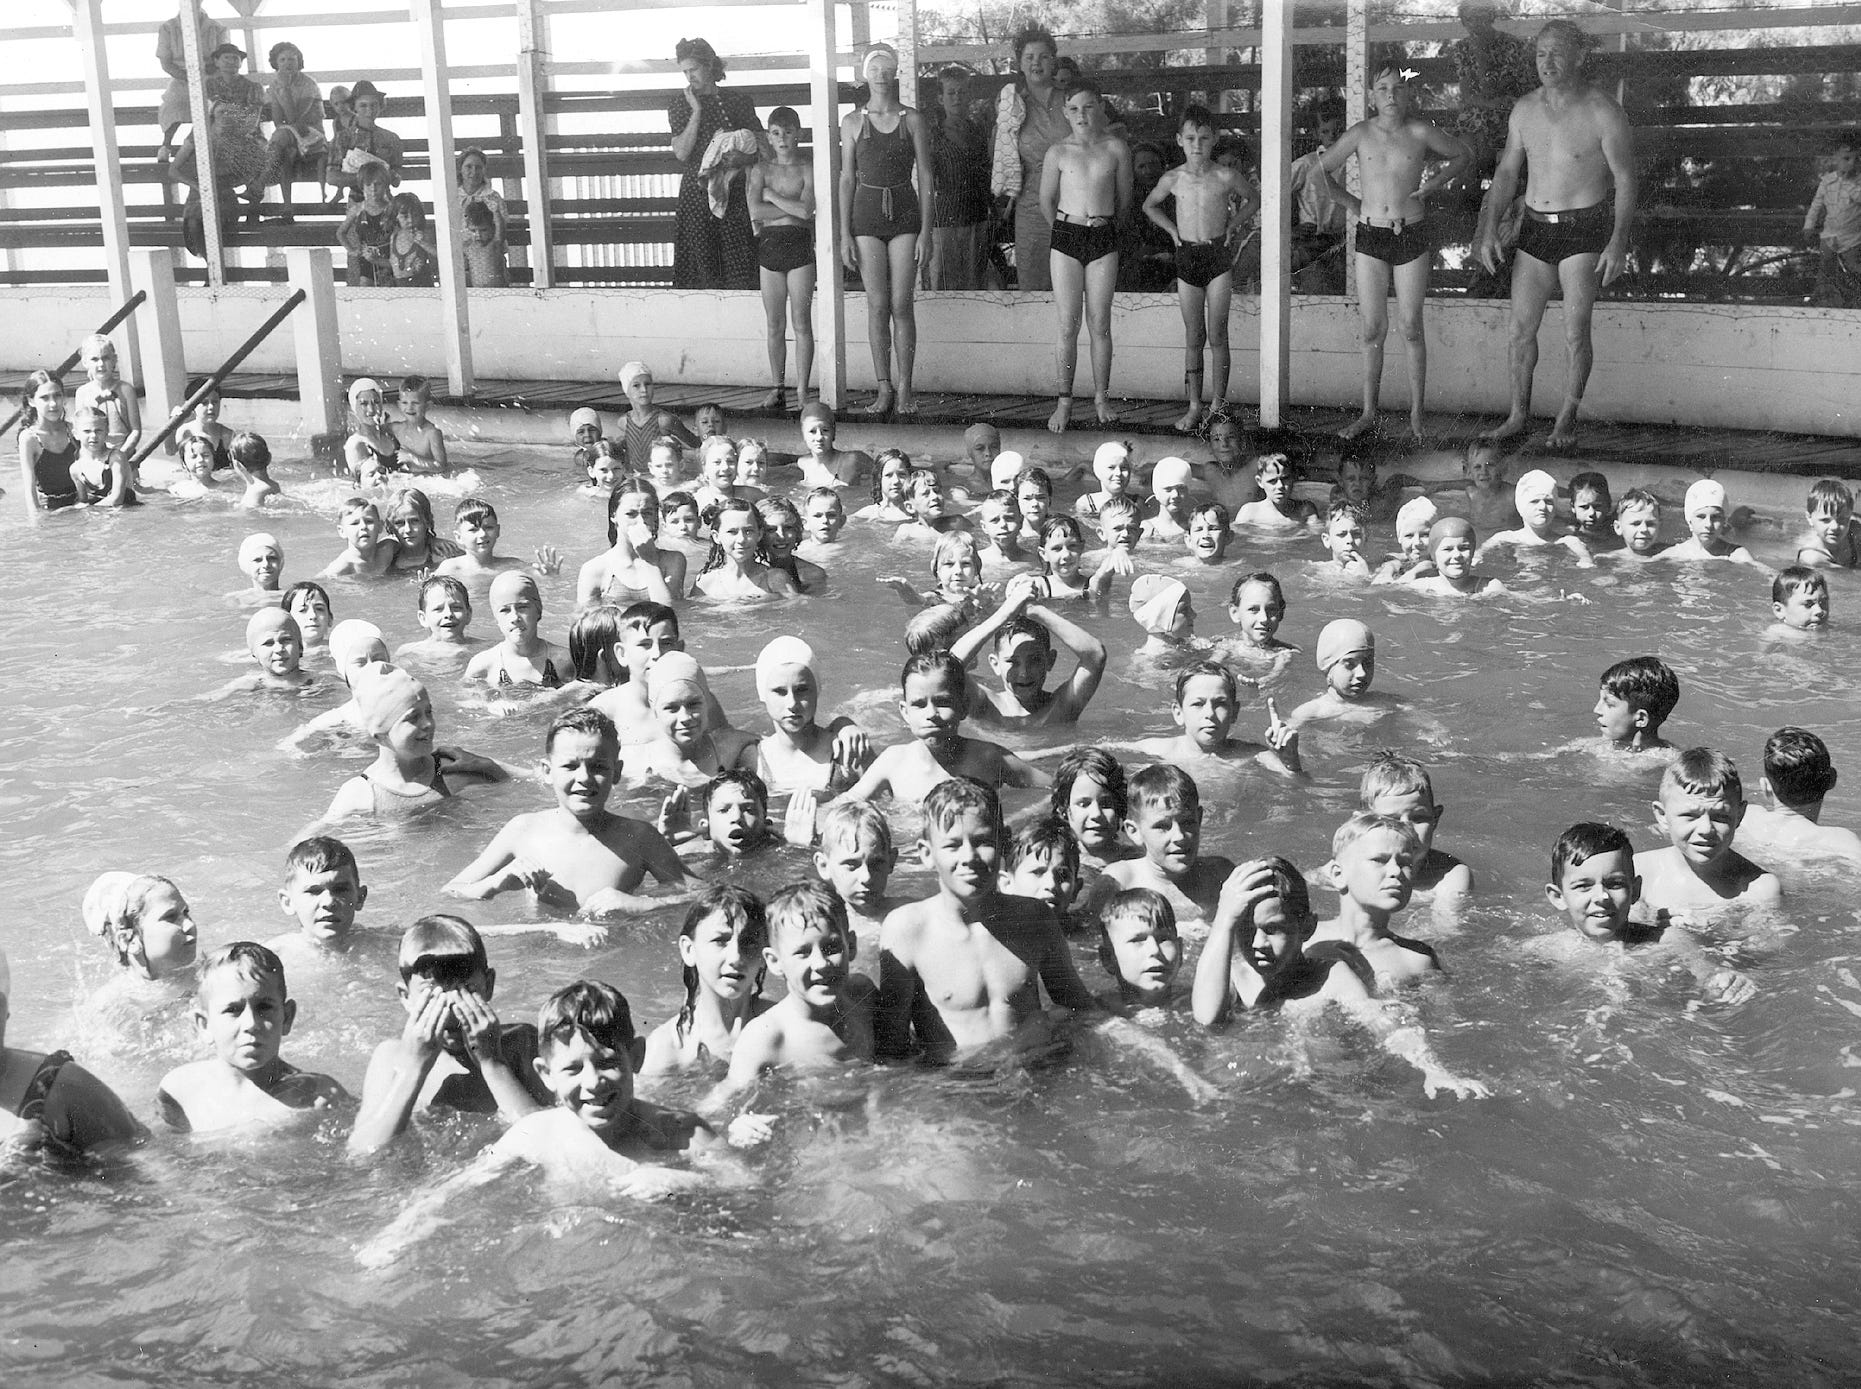 Bruce L. Collins built a saltwater pool on Corpus Christi's North Beach in 1926 that piped in water from the bay for a protected swim. The crowds enjoyed the pool until it was torn down in the late 1950s to make way for what is now the Radisson Hotel and Quality Inn & Suites.